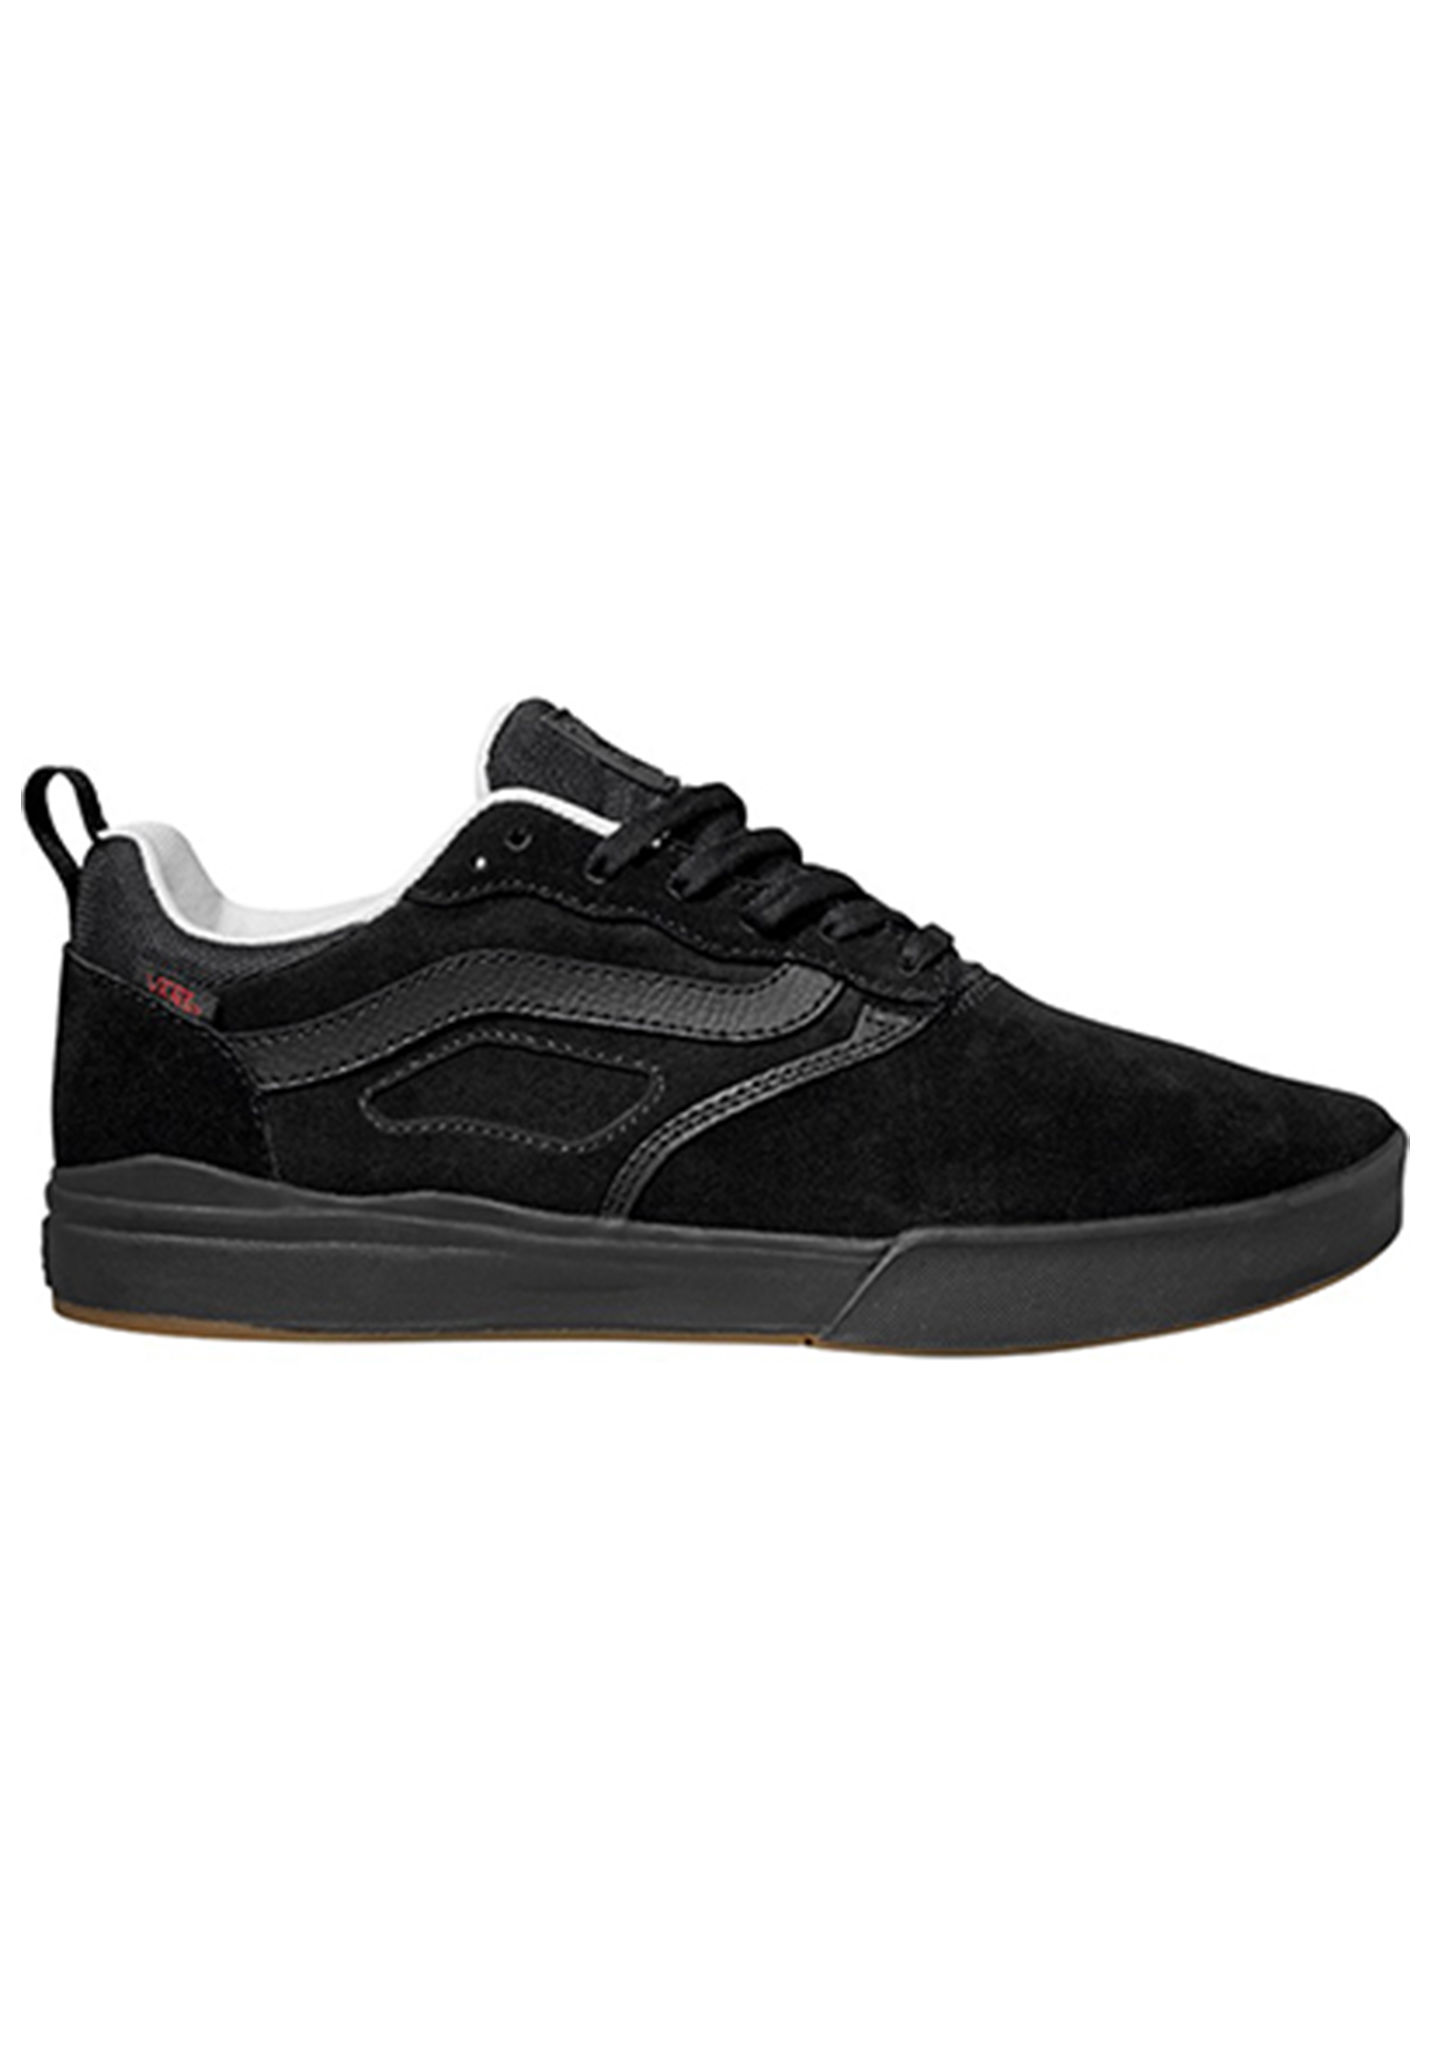 7b28aa66ed8a Achetez vans x thrasher ultrarange pro shoes   63% de r duction!